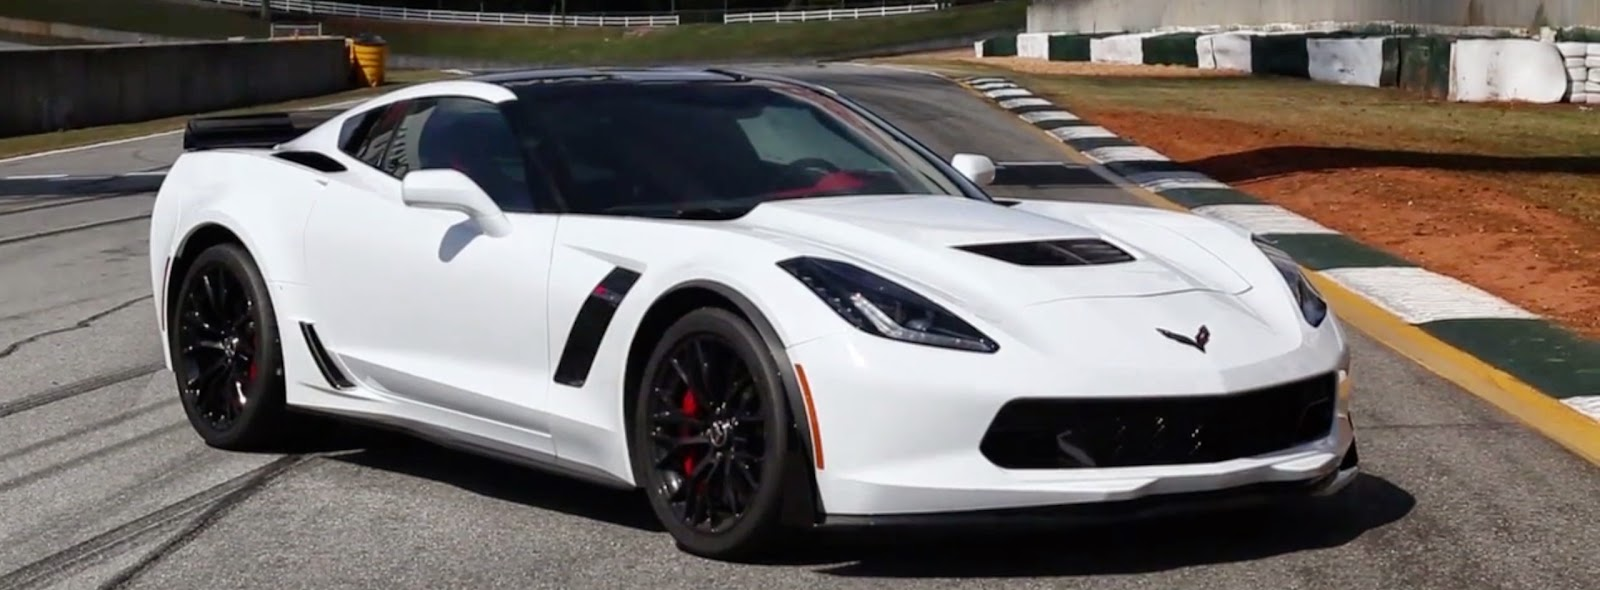 Axis Of Oversteer: How fast is the the Corvette Z06?